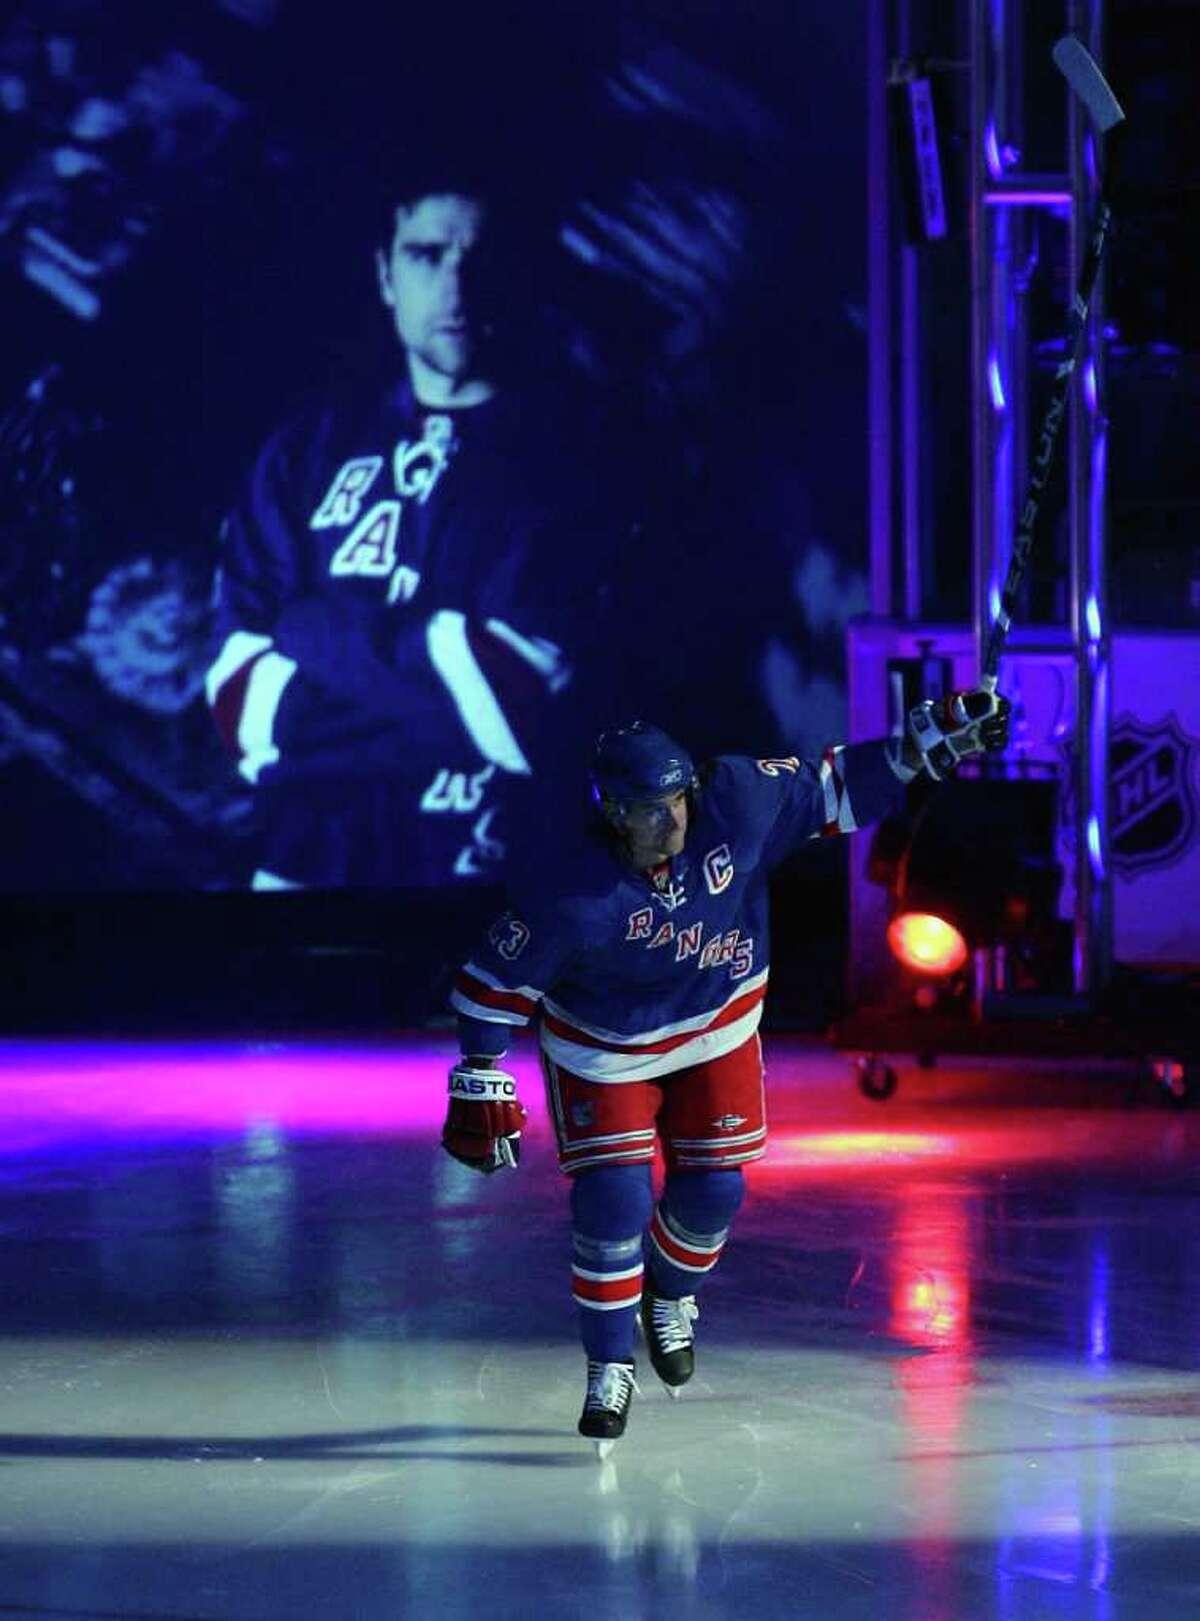 NEW YORK - OCTOBER 10: Chris Drury #23 of the New York Rangers is introduced before playing against the Chicago Blackhawks on October 10, 2008 at Madison Square Garden in New York City. The Rangers defeated the Blackhawks 4-2. (Photo by Jim McIsaac/Getty Images)